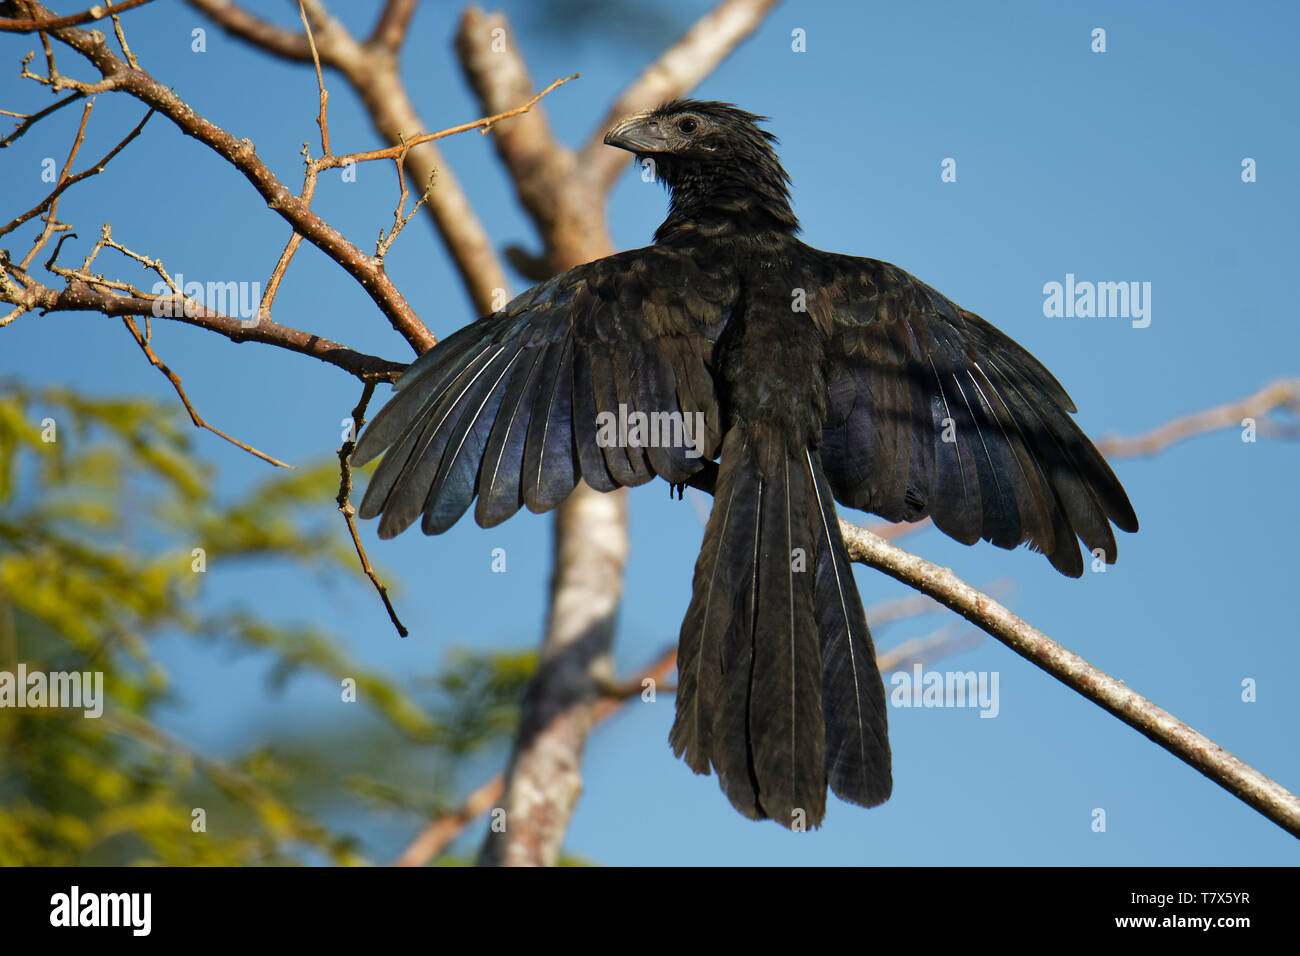 Groove-billed Ani - Crotophaga sulcirostris tropical bird in the cuckoo family, long tail and a large, curved beak. Resident species from Texas, Mexic - Stock Image